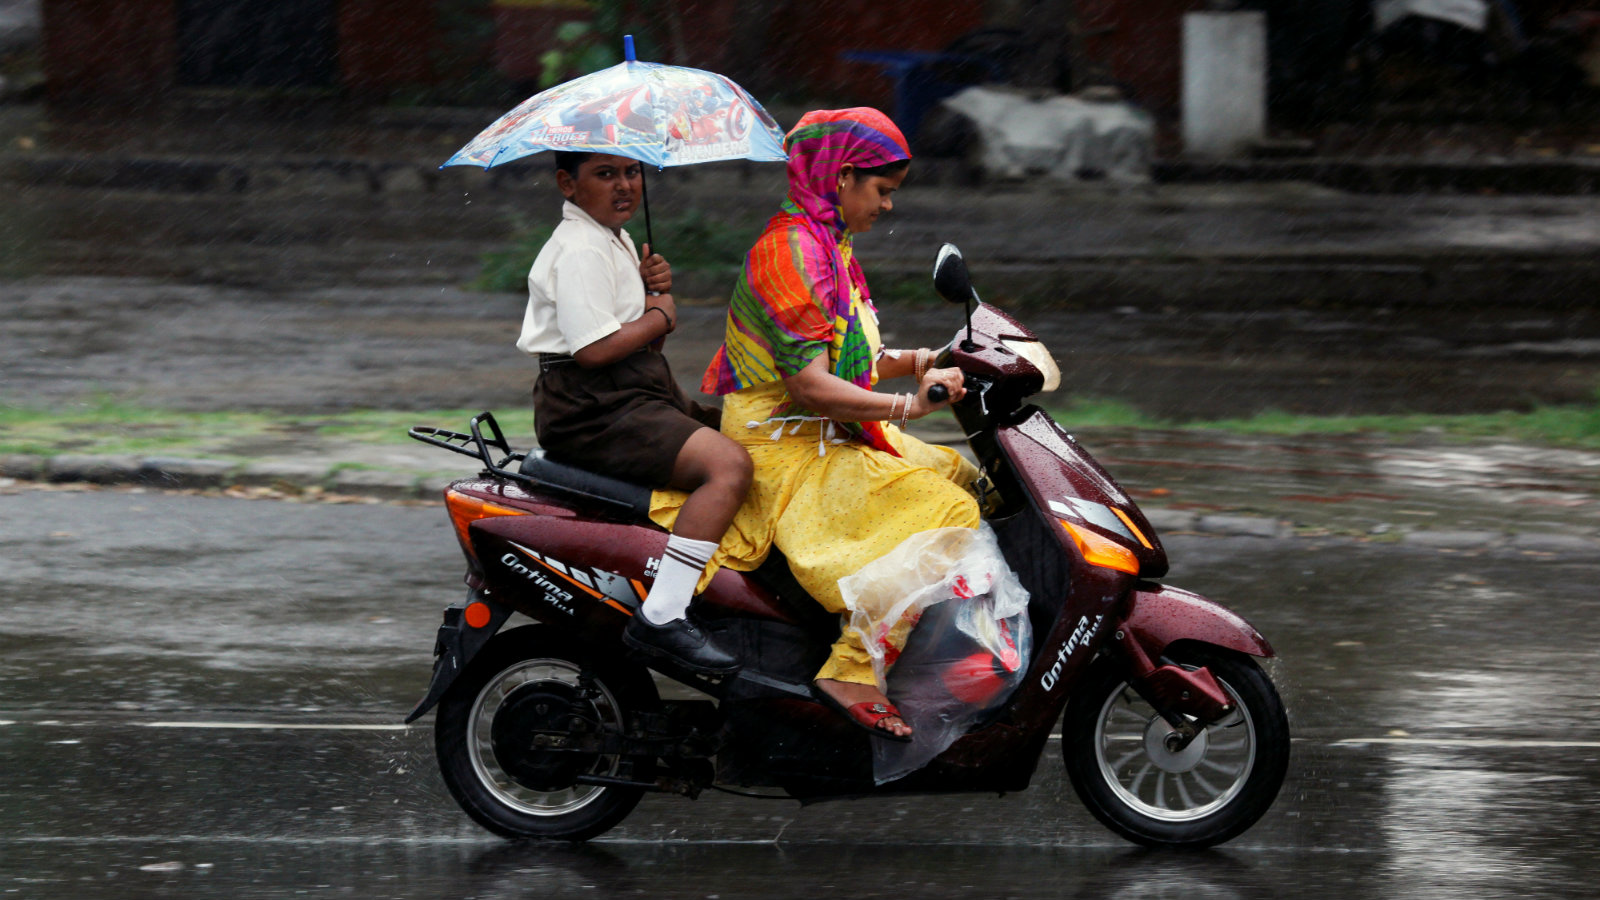 A boy holds an umbrella as he travels on a scooter with his mother during rains in Chandigarh, India, July 14, 2016.